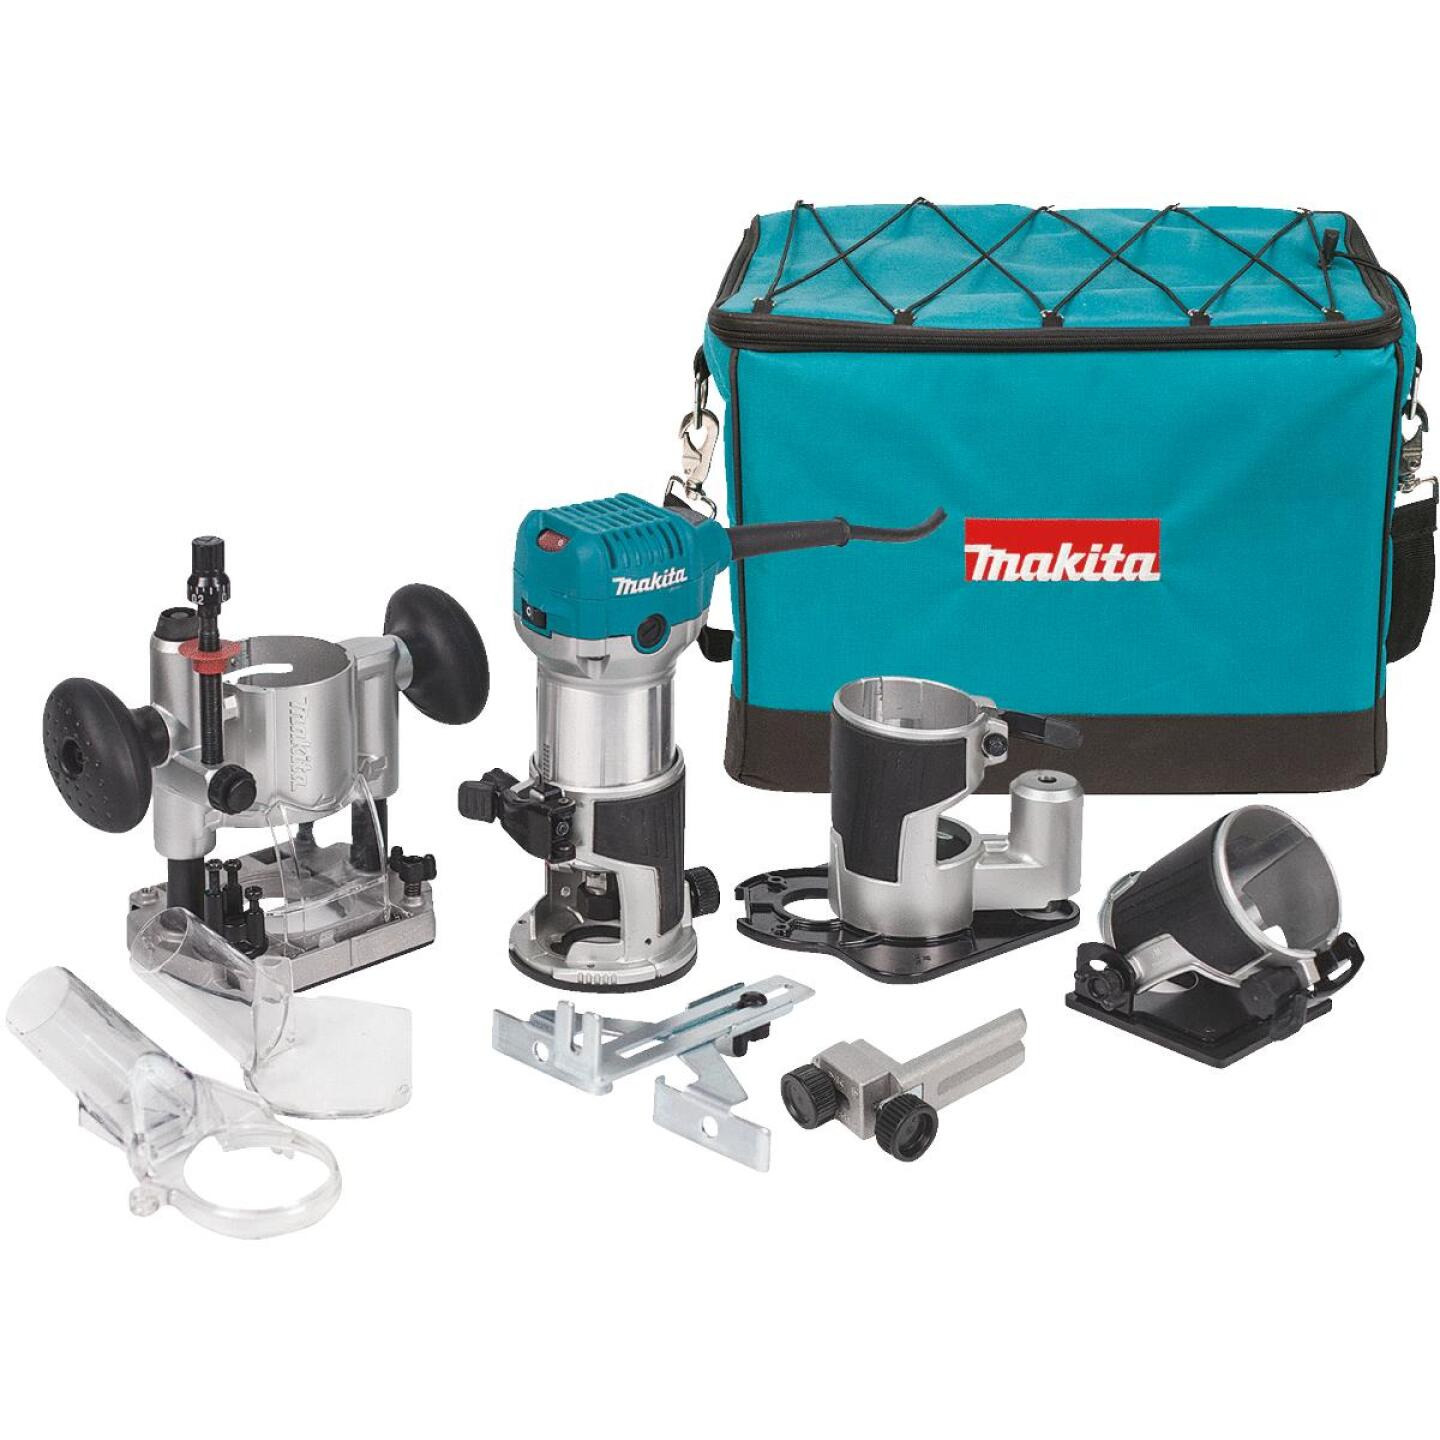 Makita 6.5A 10,000 to 30,000 rpm Router Kit Image 1